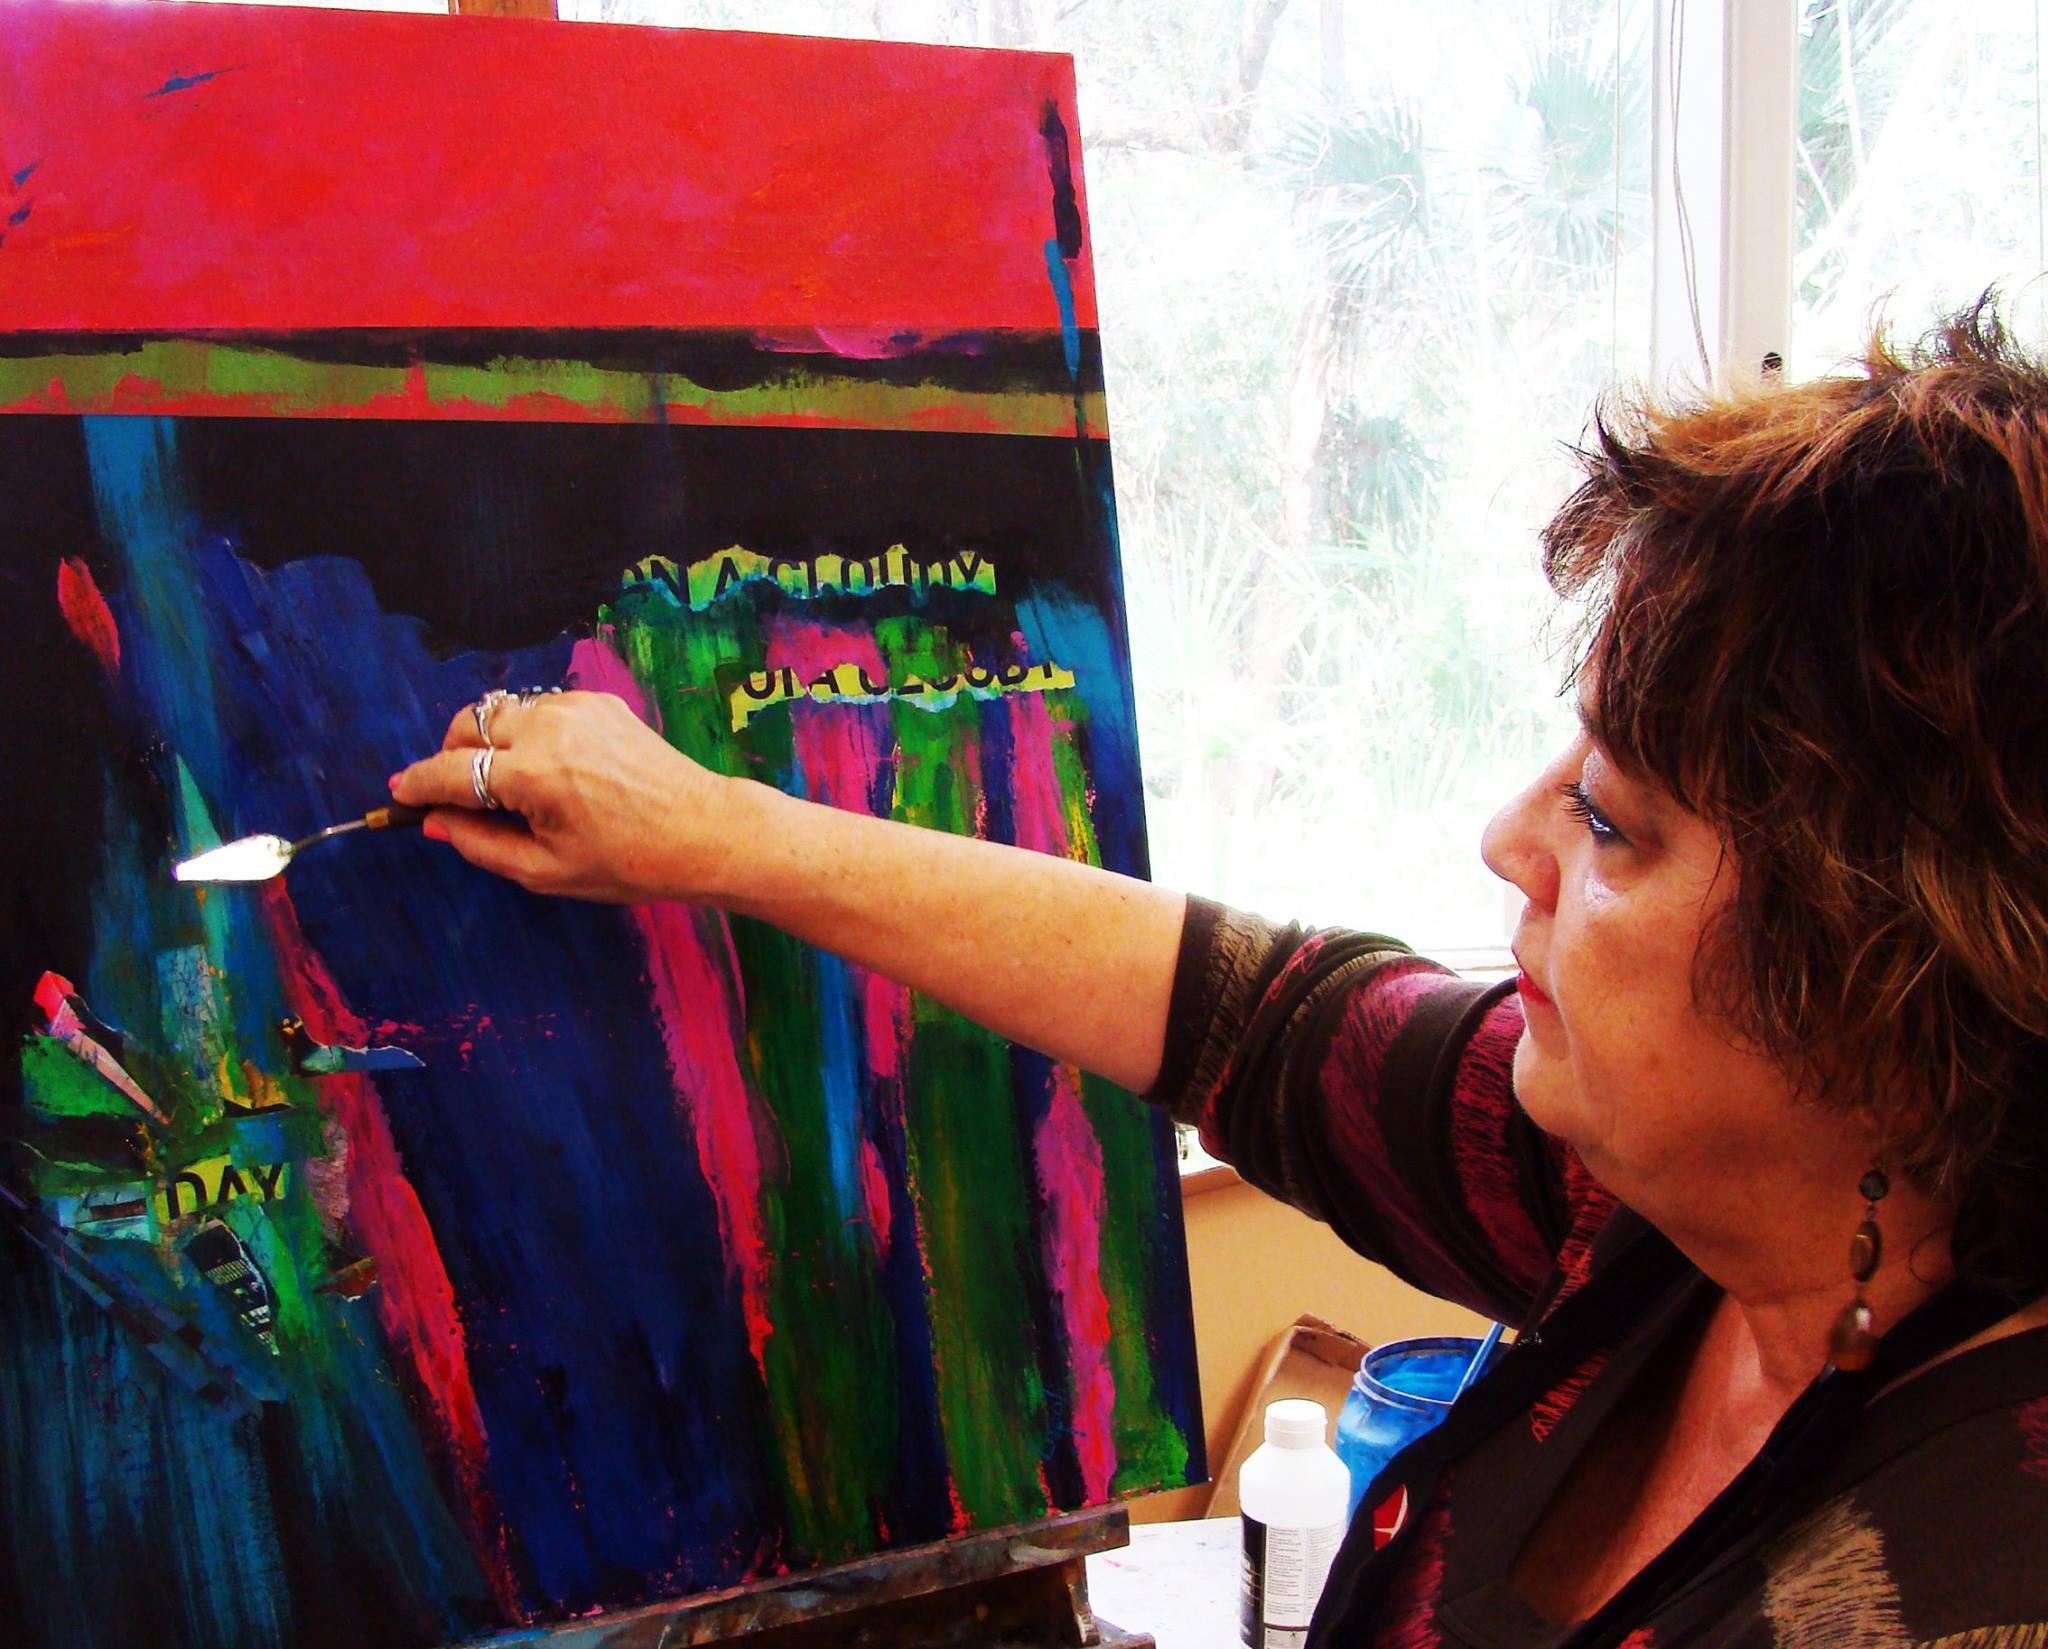 Guest Artist: Babz Lupoli - Collecting art has always given me great pleasure. My home is a gallery with a wide range of genres ~ pieces that calm me and inspire me ~ they have become part of my soul. And now, I create art that I want to share with the world. We all need to surround ourselves with beauty and inspiration reflected in the shapes, patterns and colors of our planet.Choose art in all of its forms... You will be enriched.-Babz Lupoli